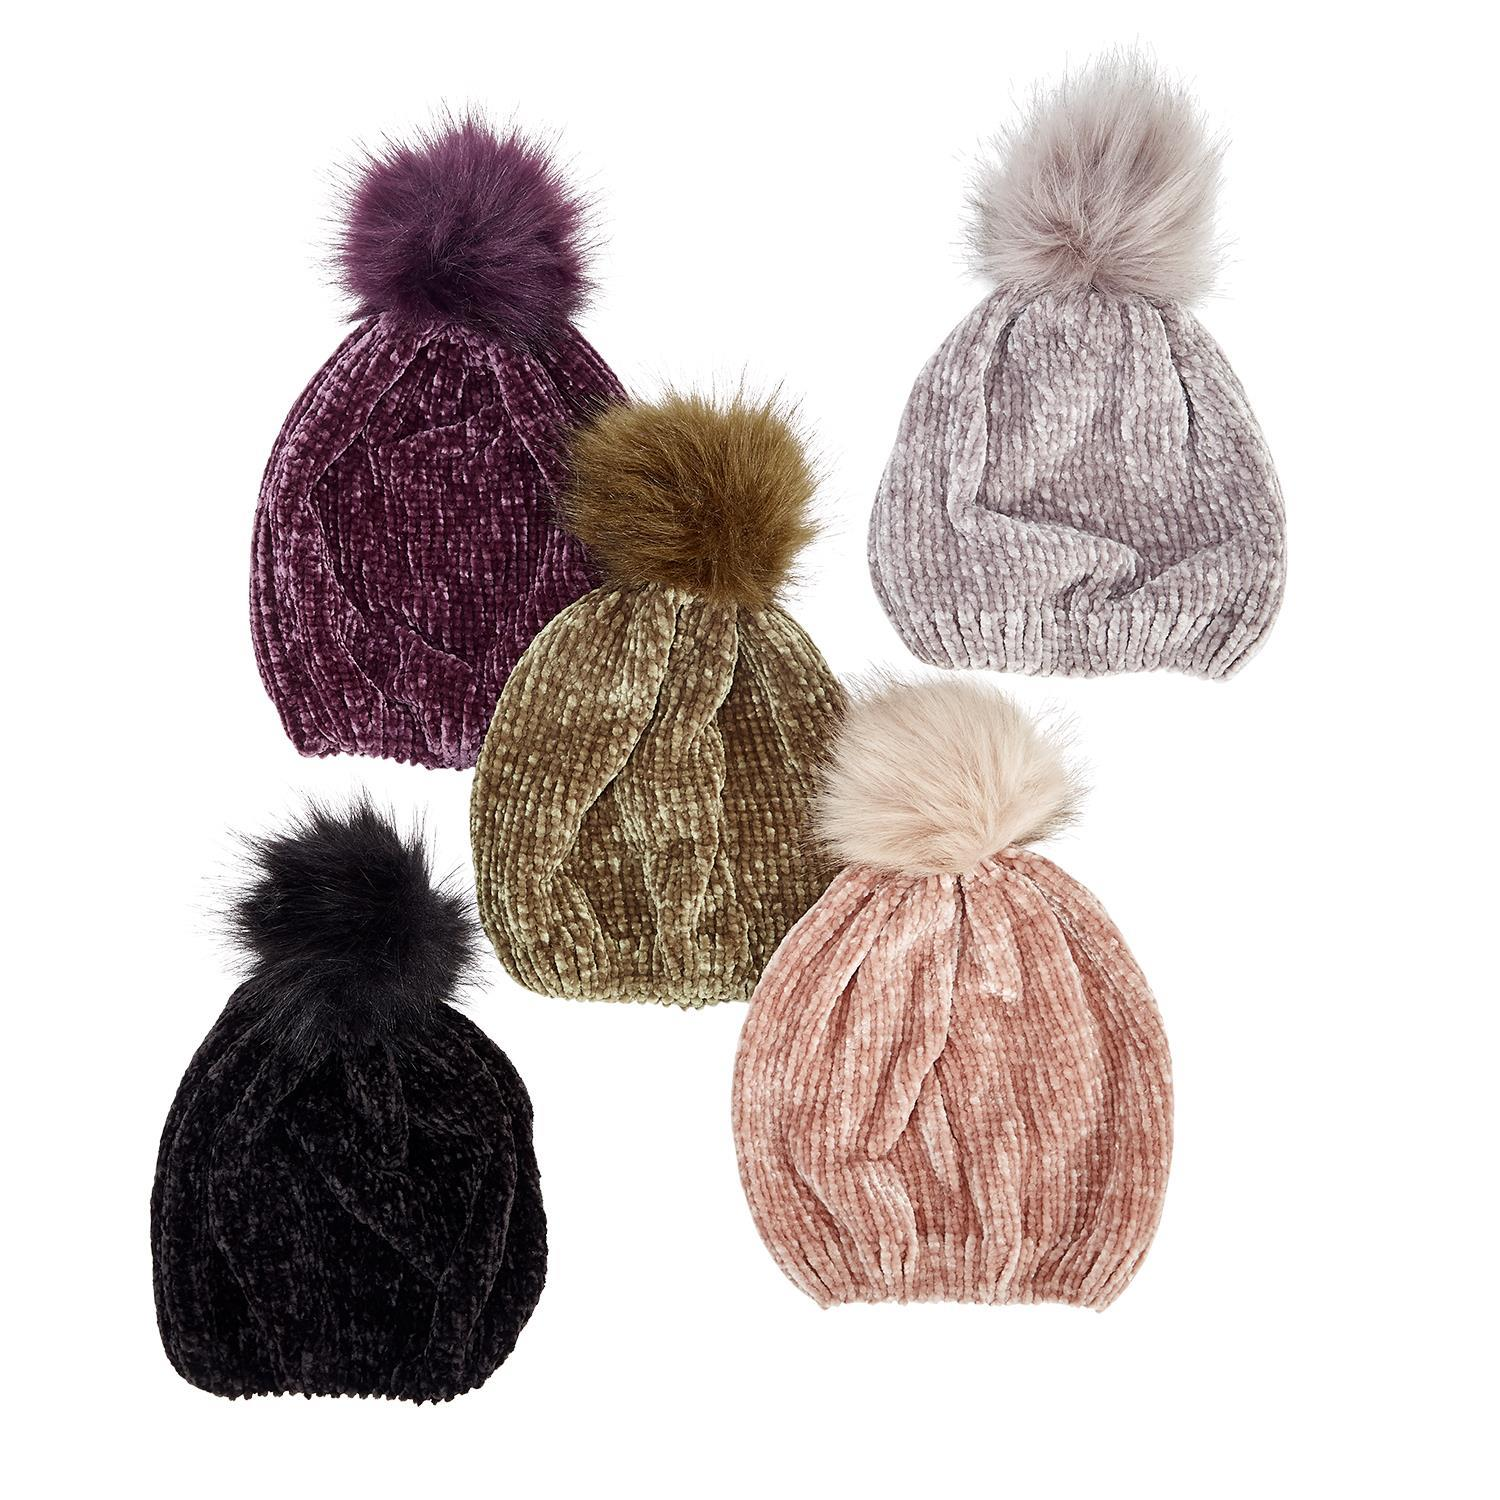 81b6a75edc Chenille Hat w Pom Pom Assorted 5 Colors